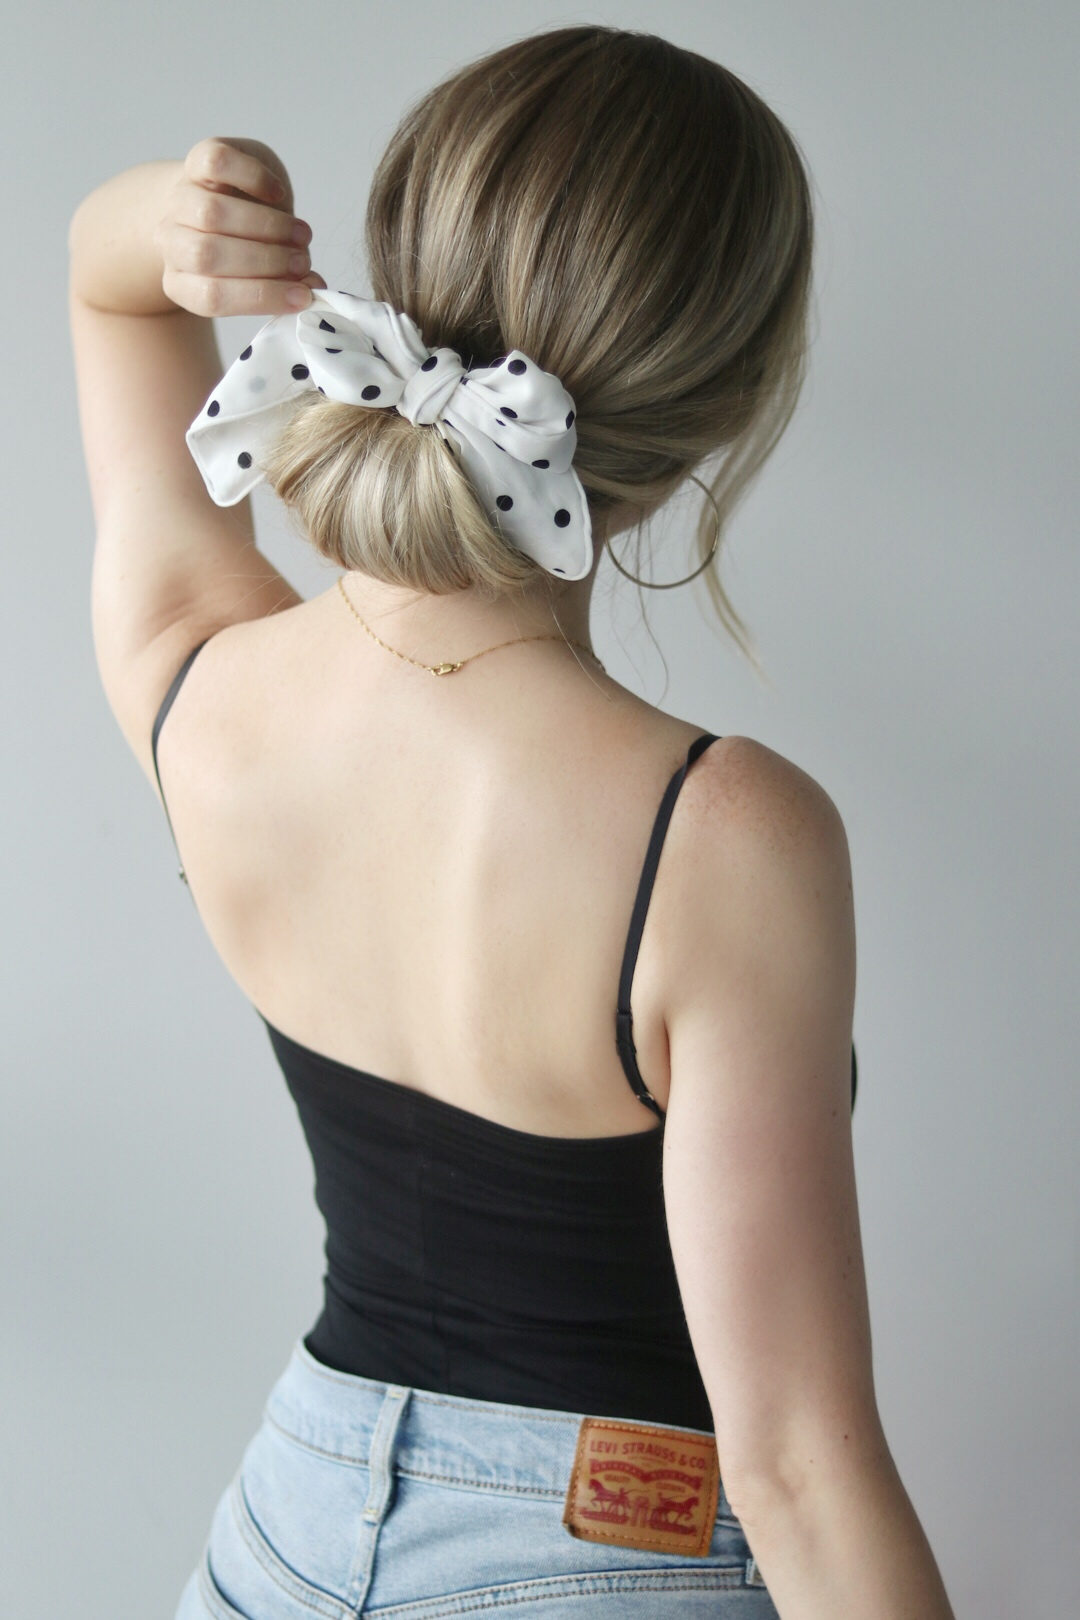 EASY HAIRSTYLES WITH A SCARF, Alex Gaboury